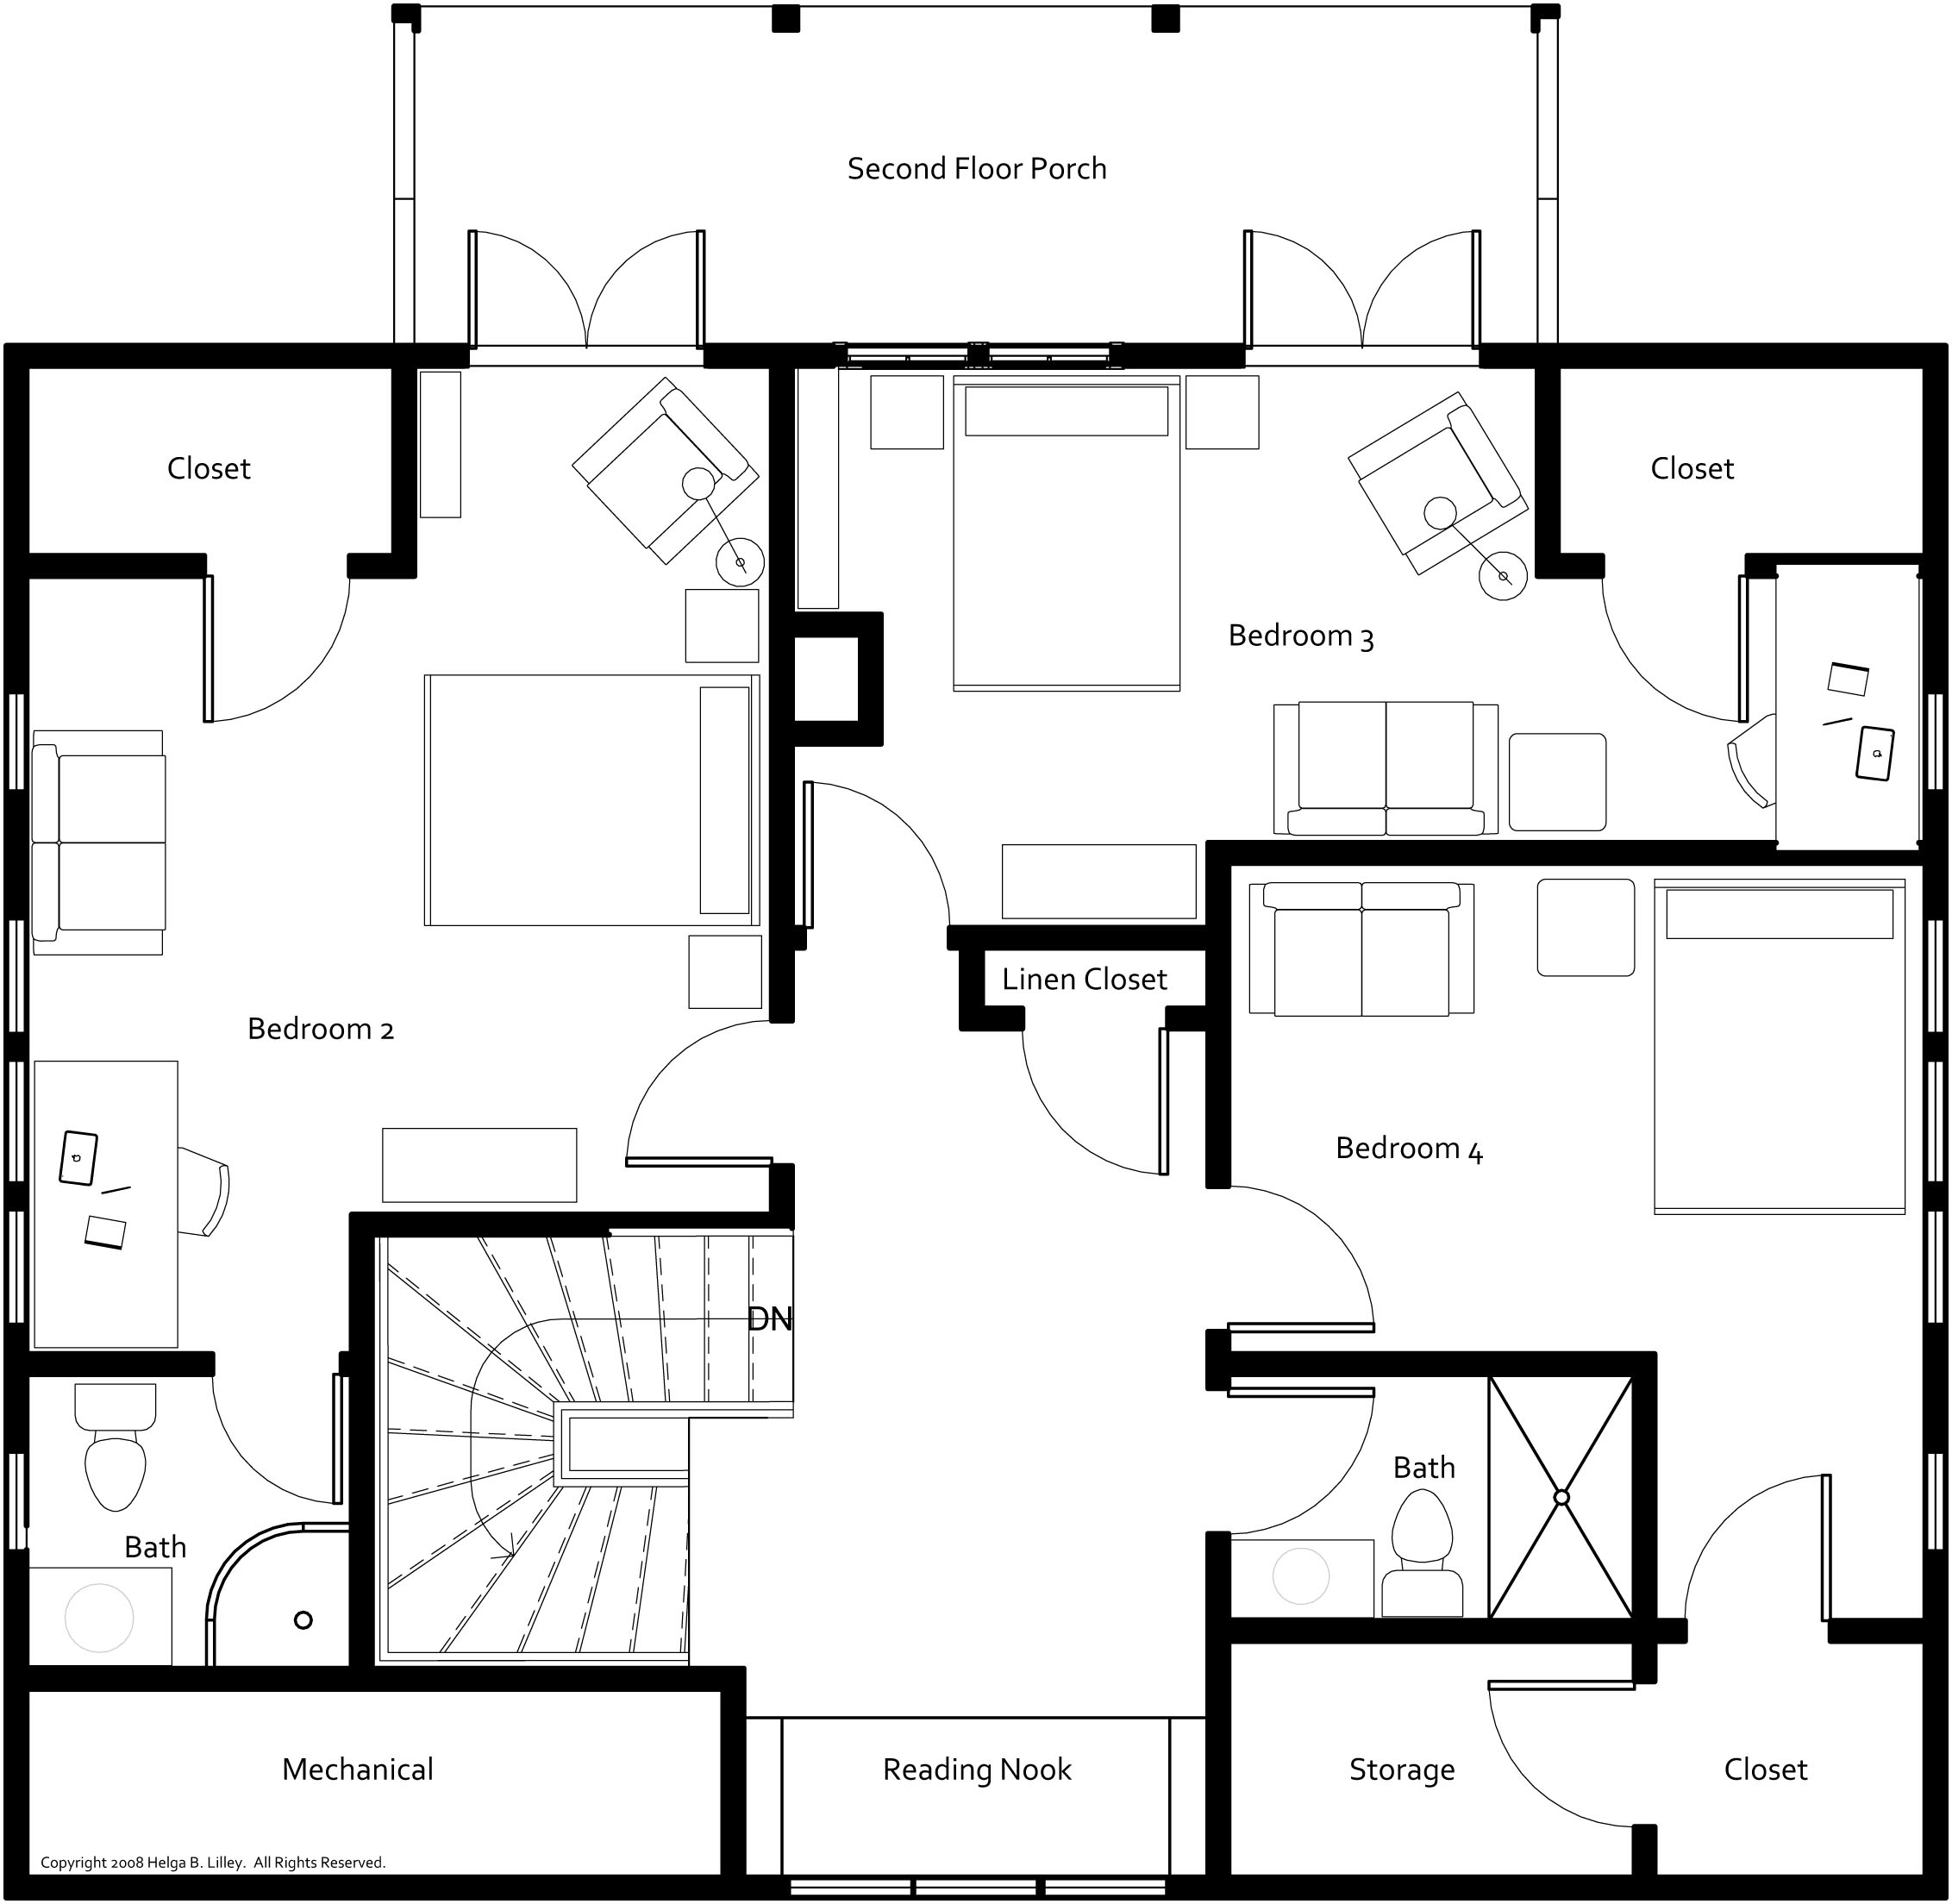 Sip home floor plans 28 images sip homes floor plans Sip homes floor plans